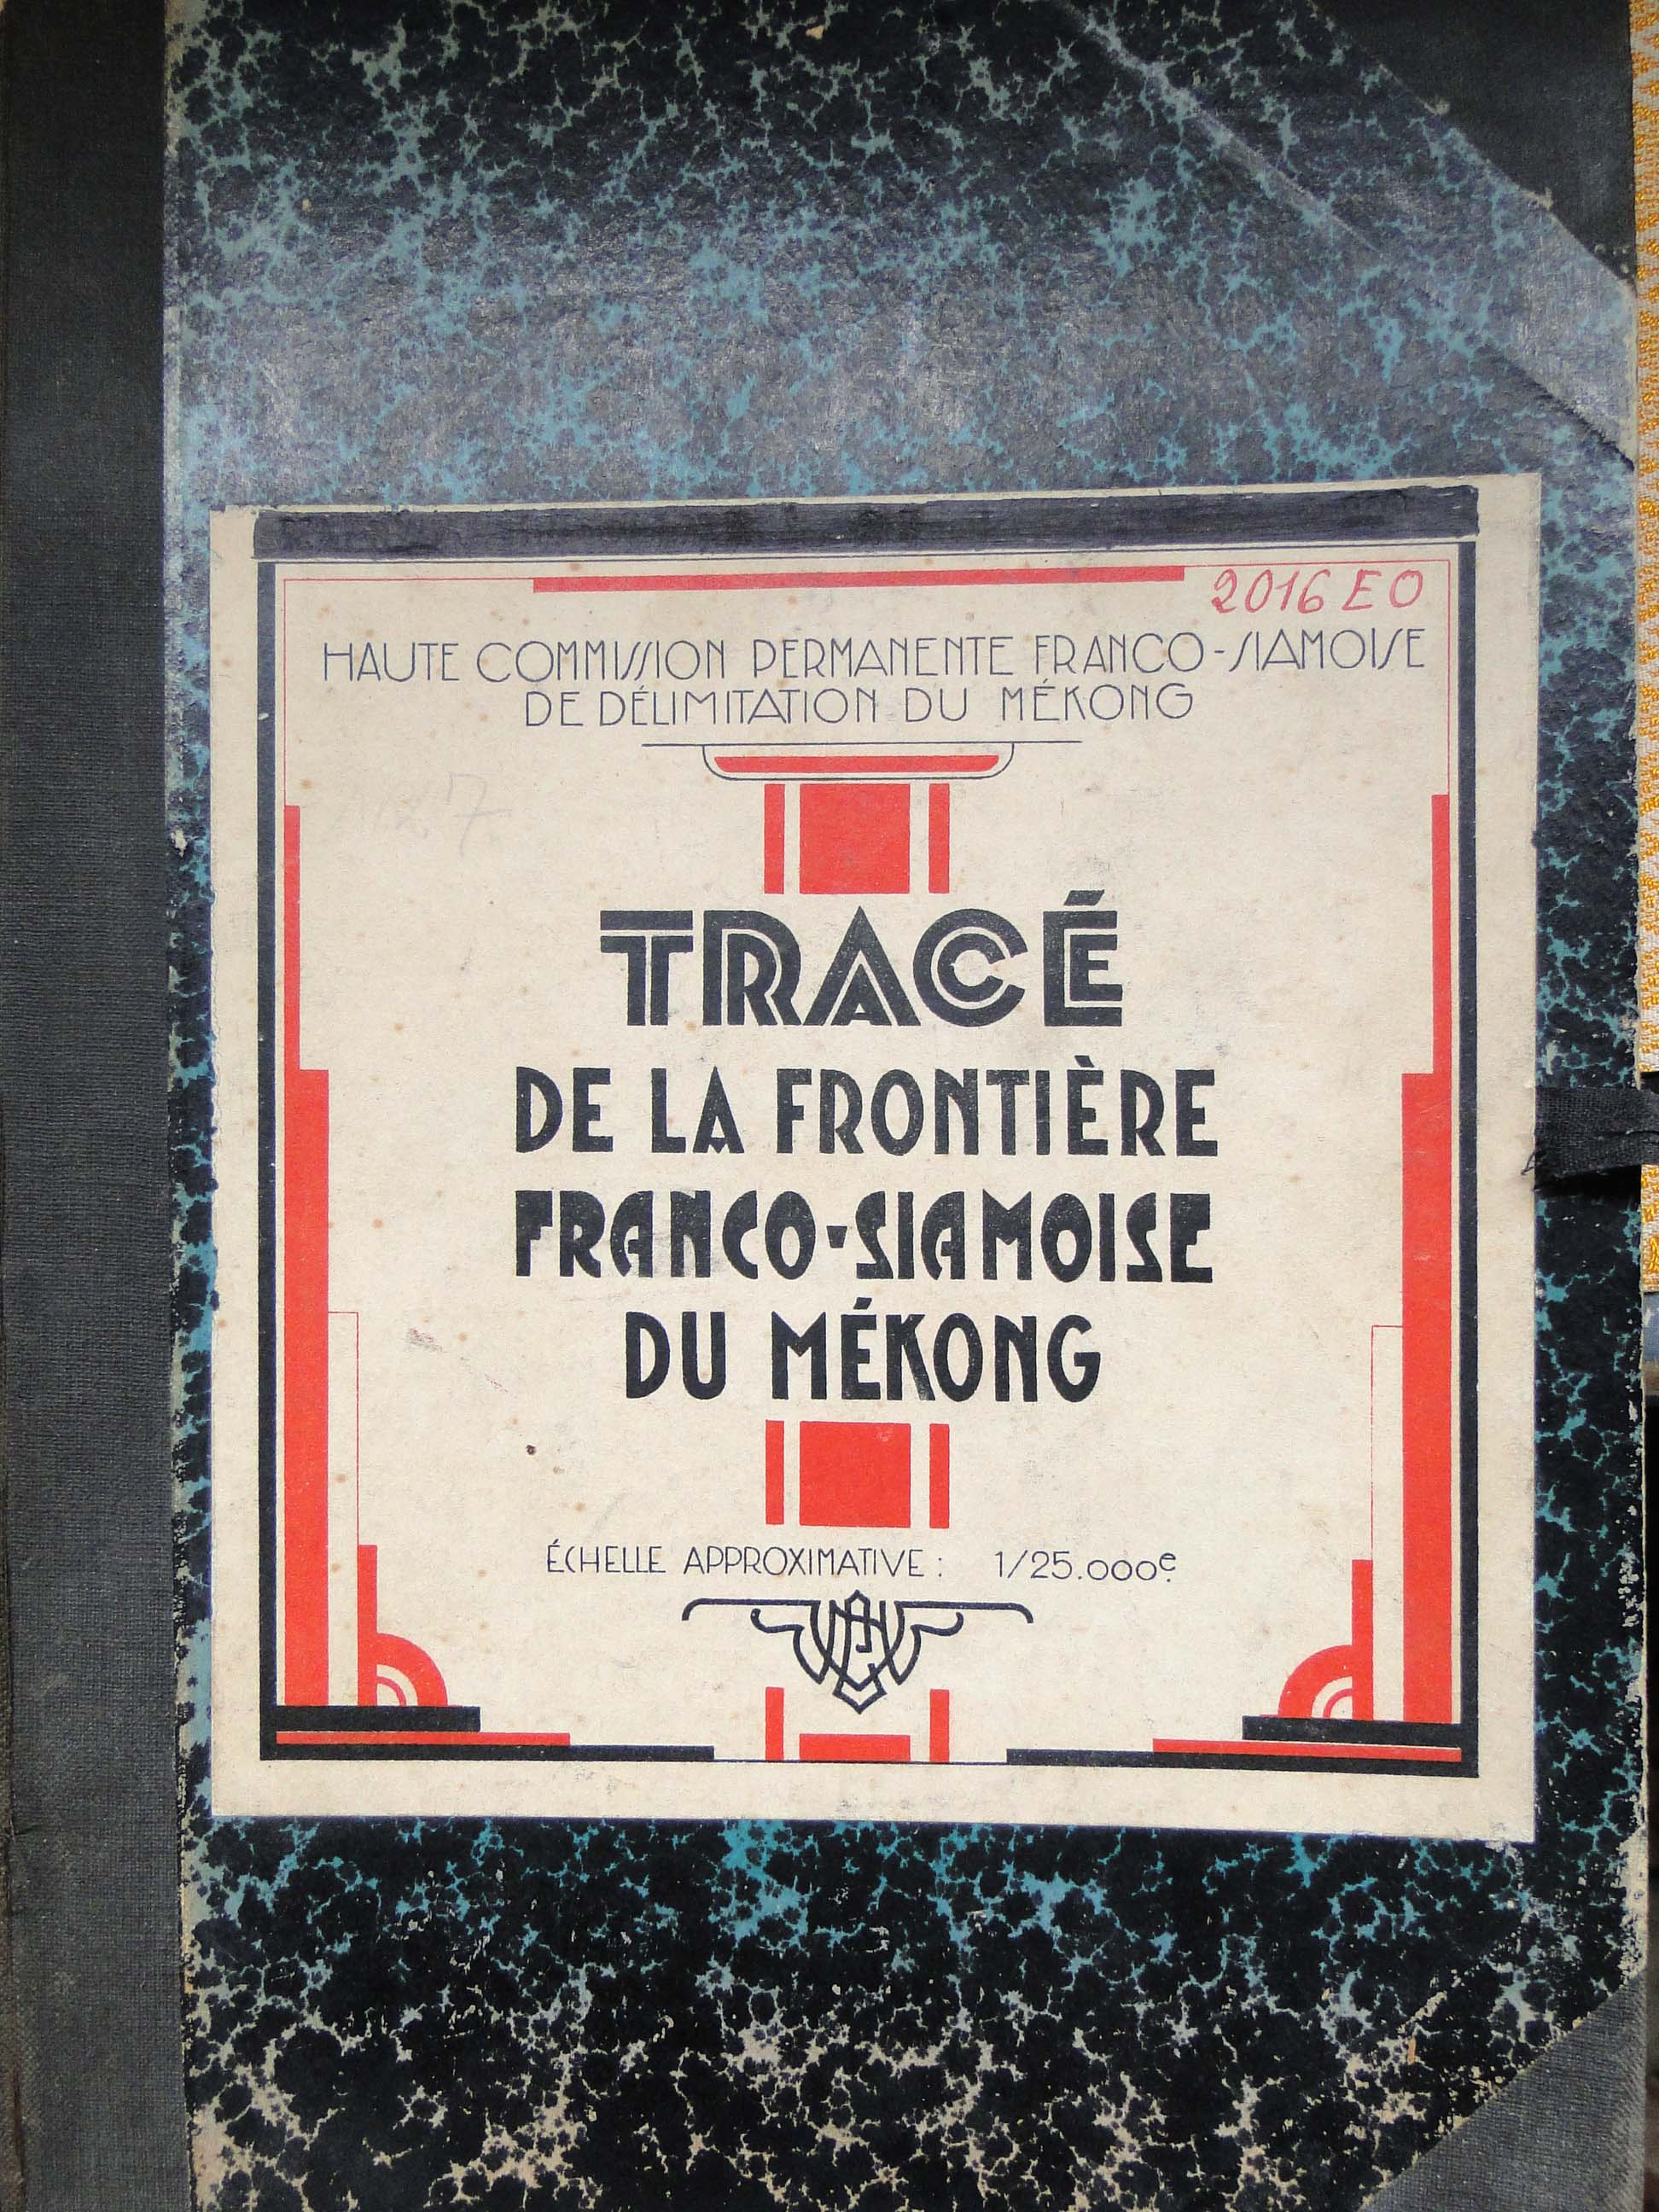 Trace Frontiere Franco-Siamoise Mekong